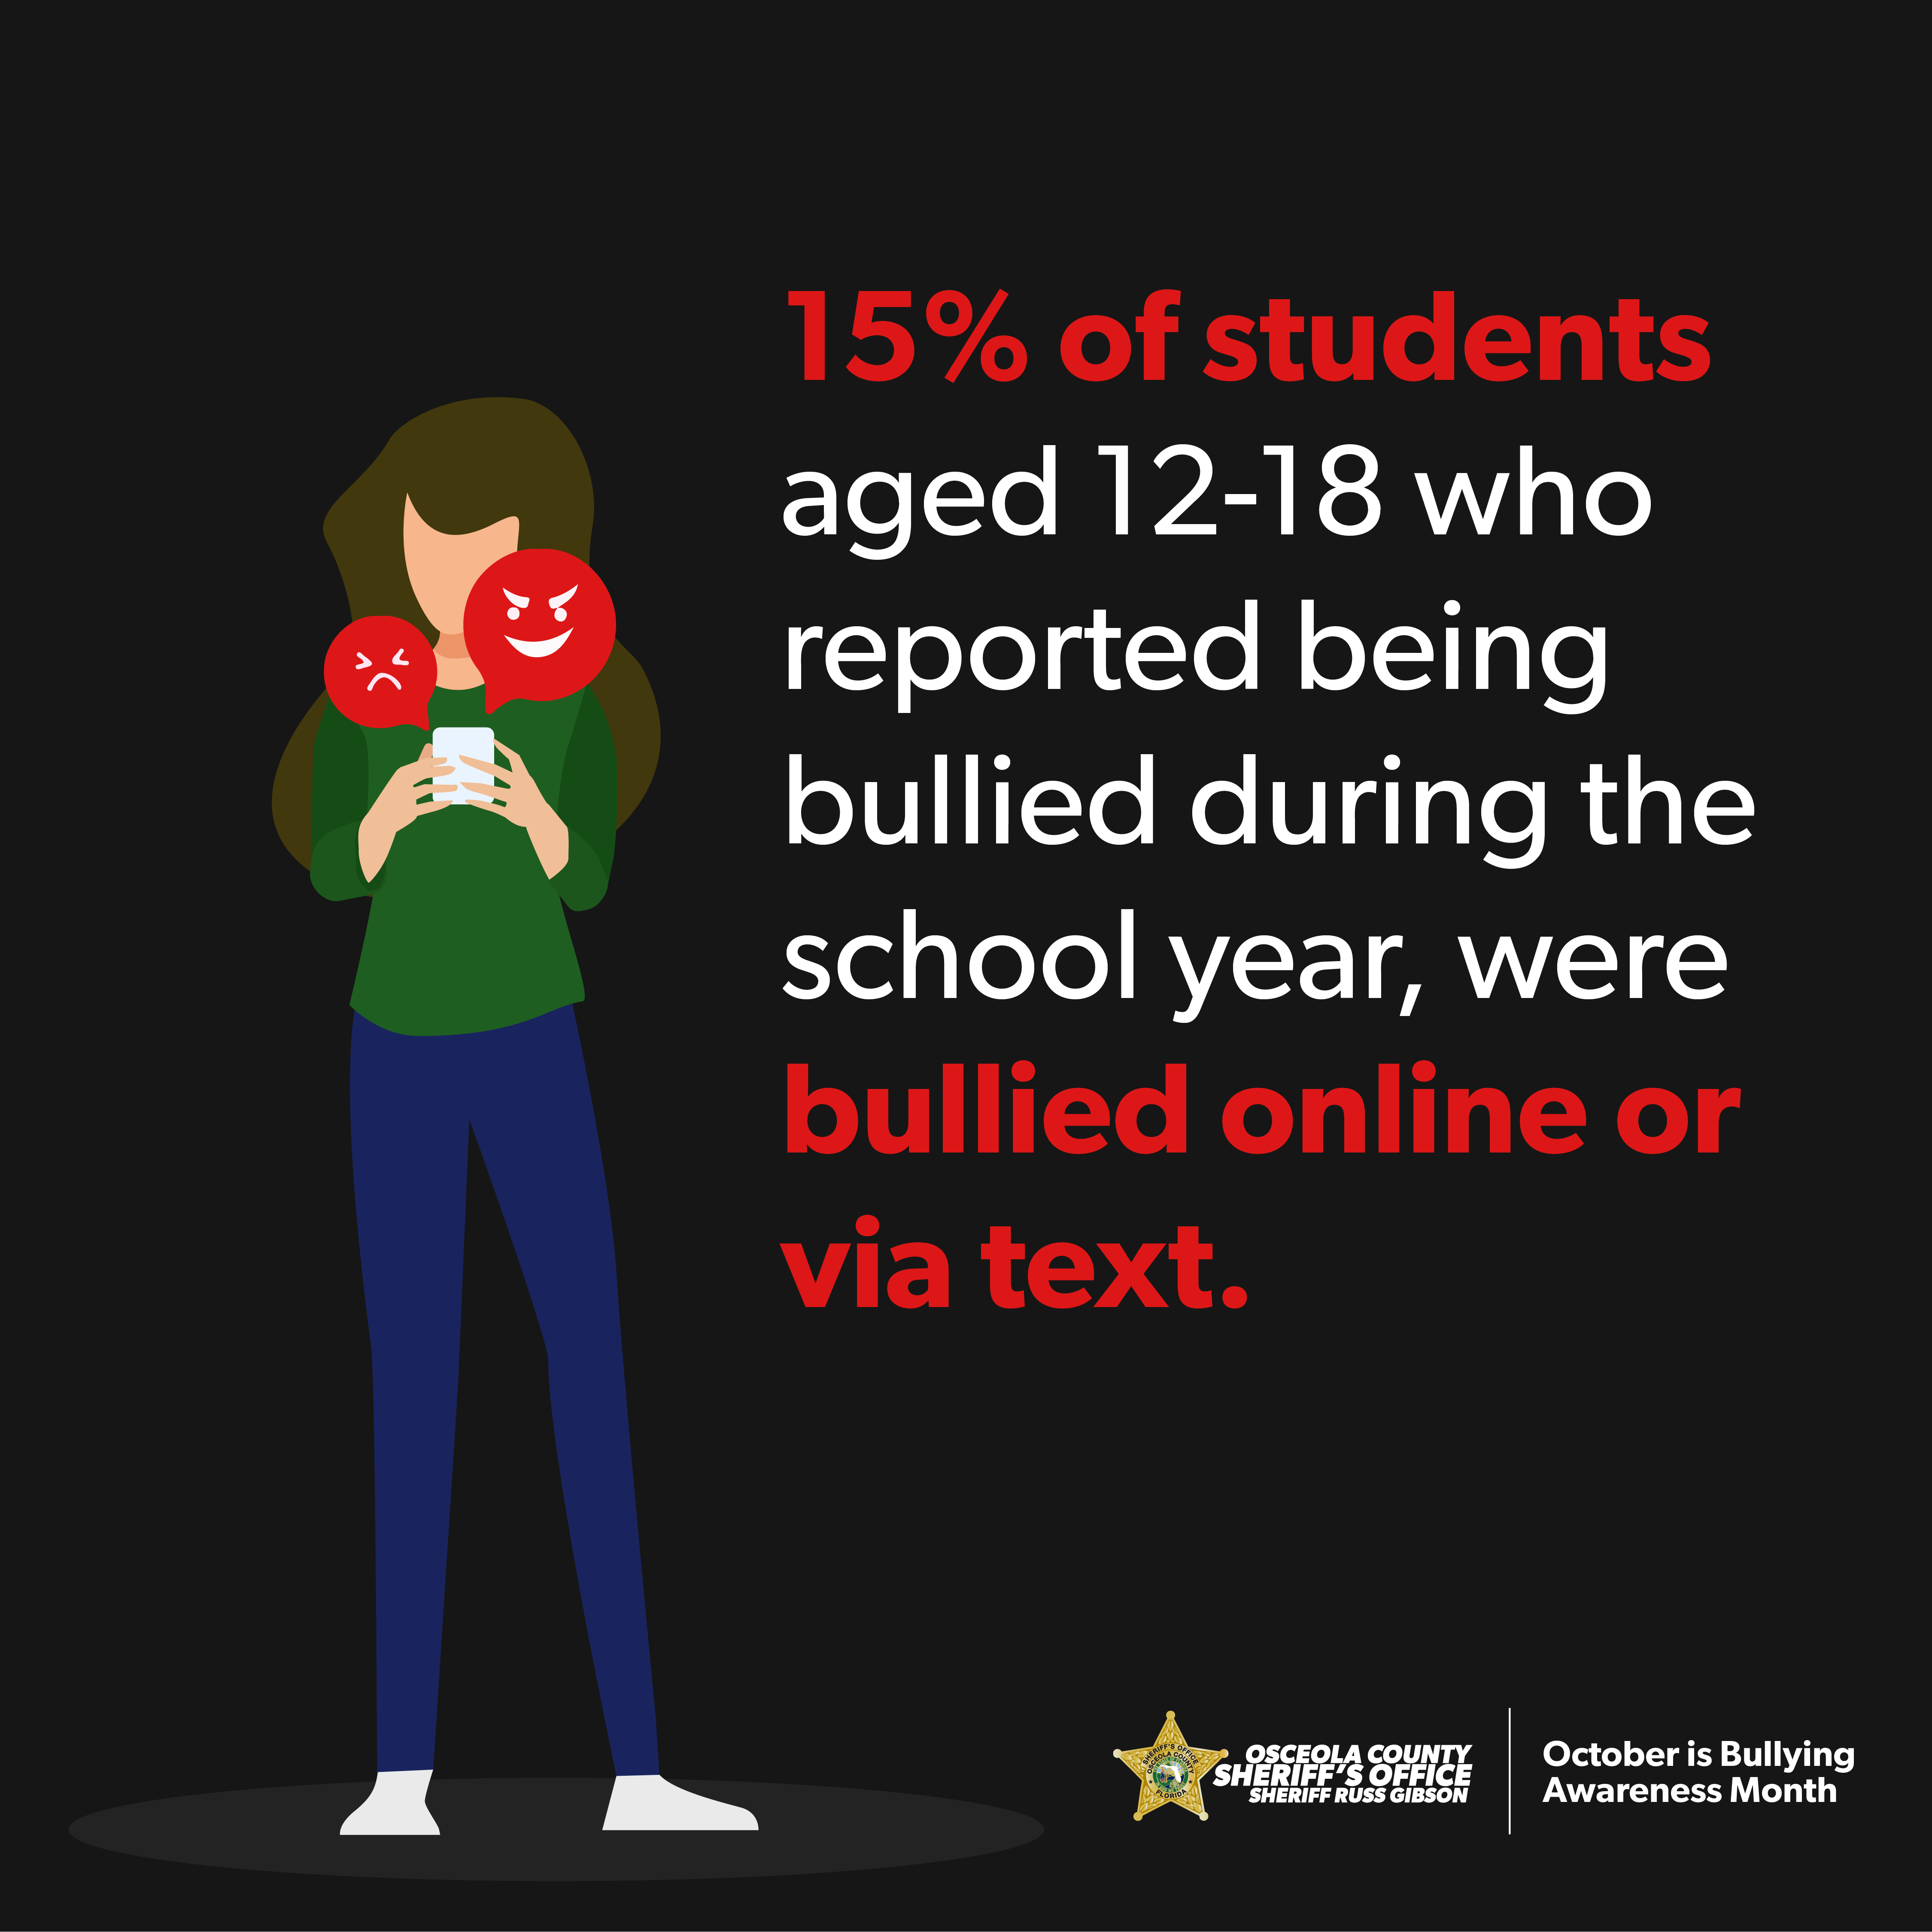 15% of students aged 12-18 who reported being bullied during the school year, were bullied online or via text.